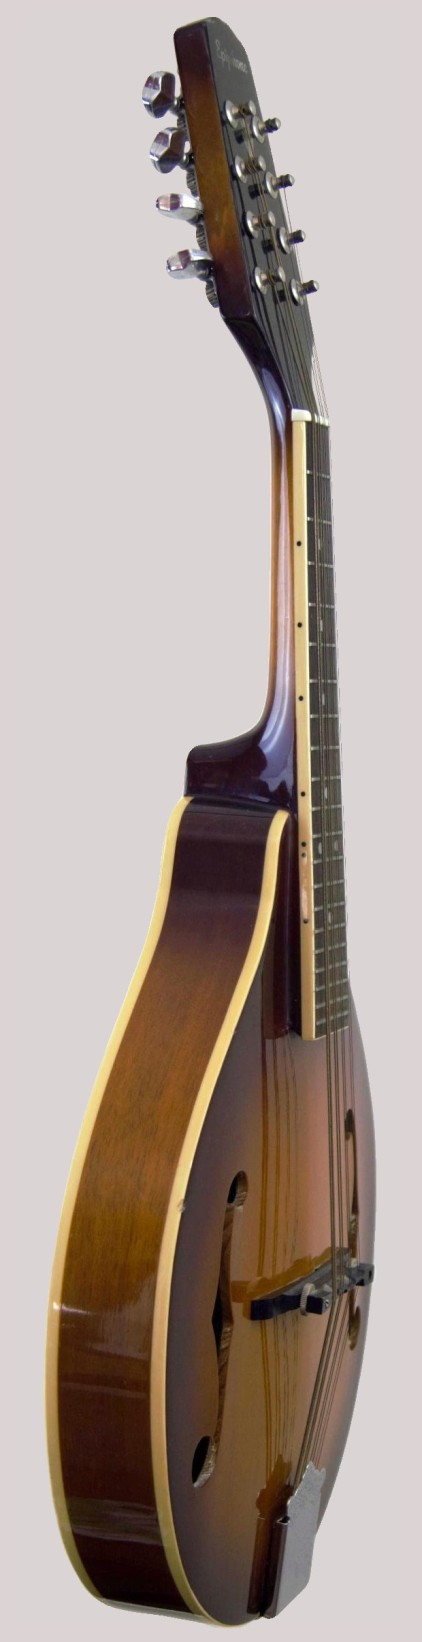 gibson epiphone a type mandolin